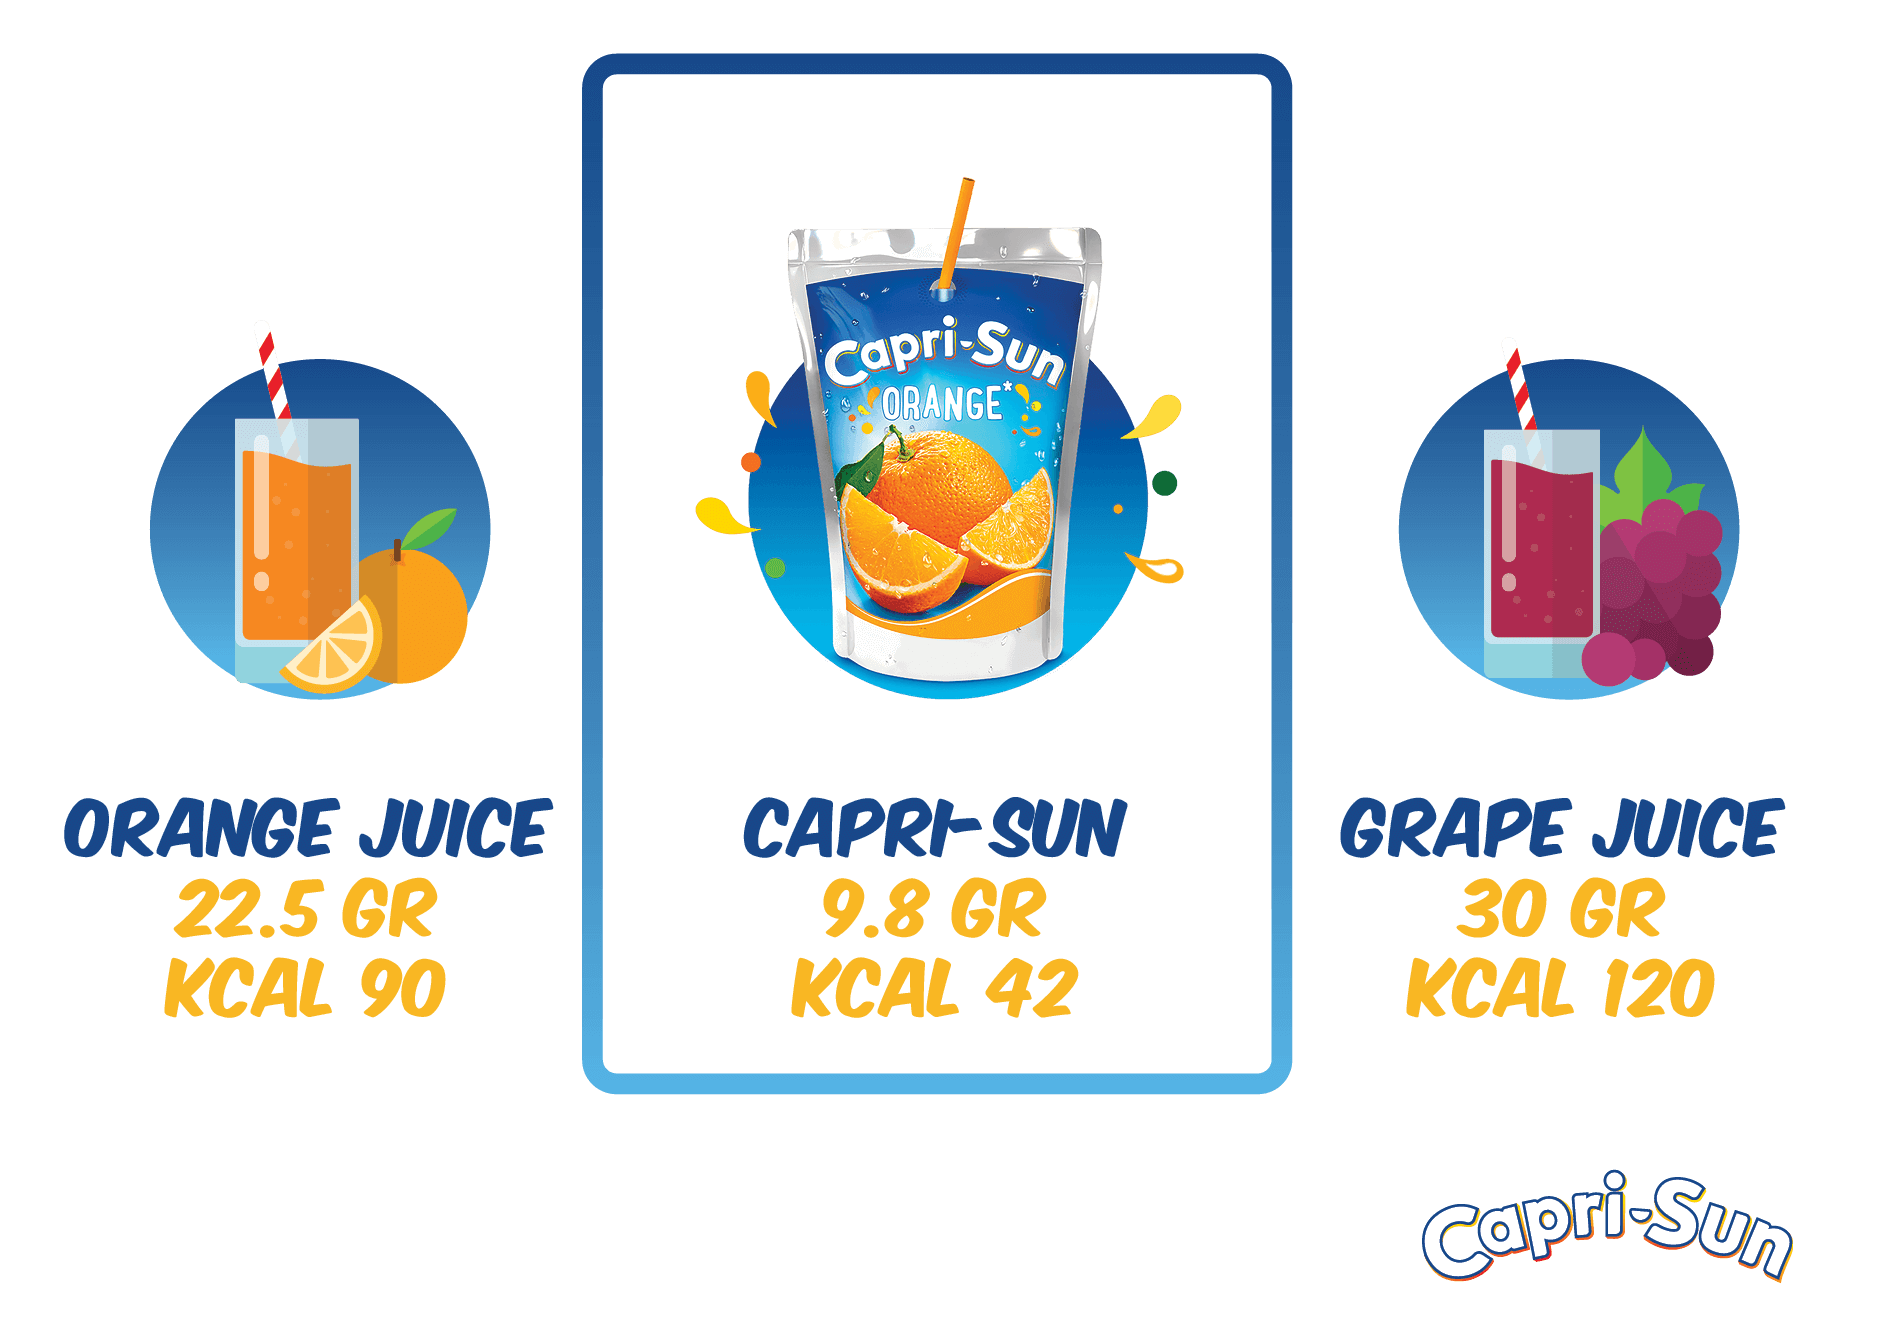 Comparison of sugar content in Capri-Sun, orange juice and grape juice.